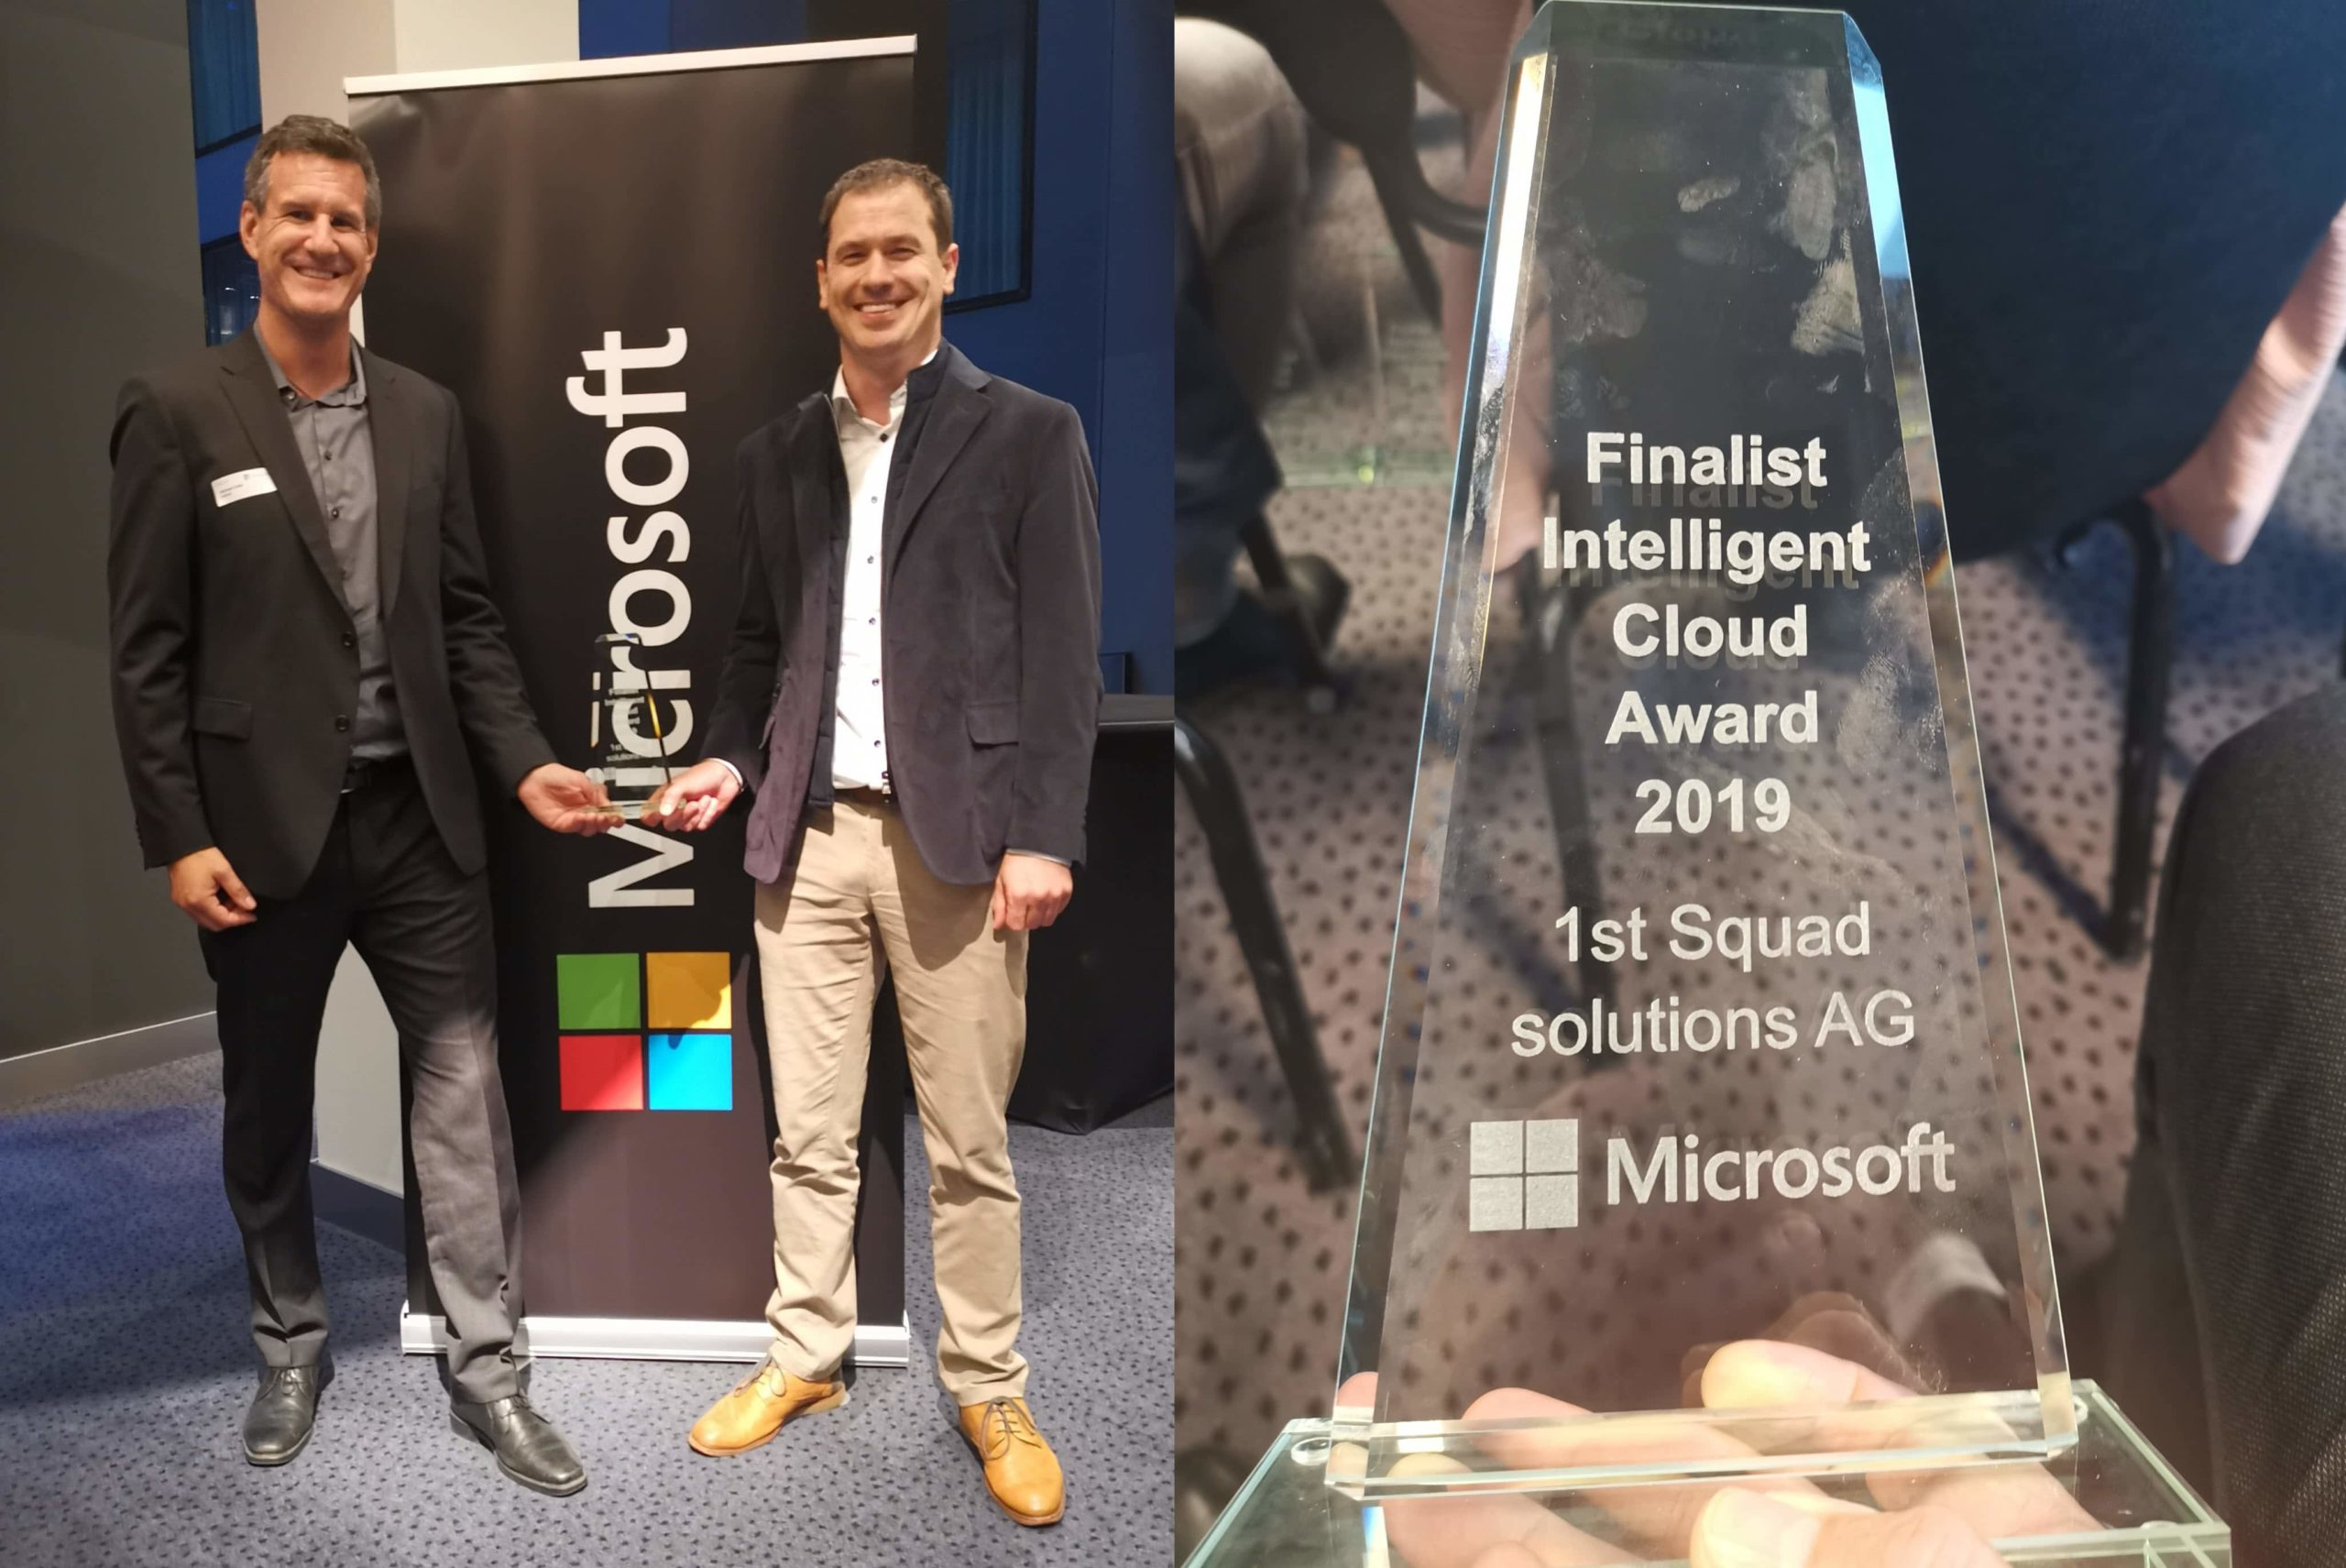 Microsoft-Finalist-Intelligent-Cloud-Award